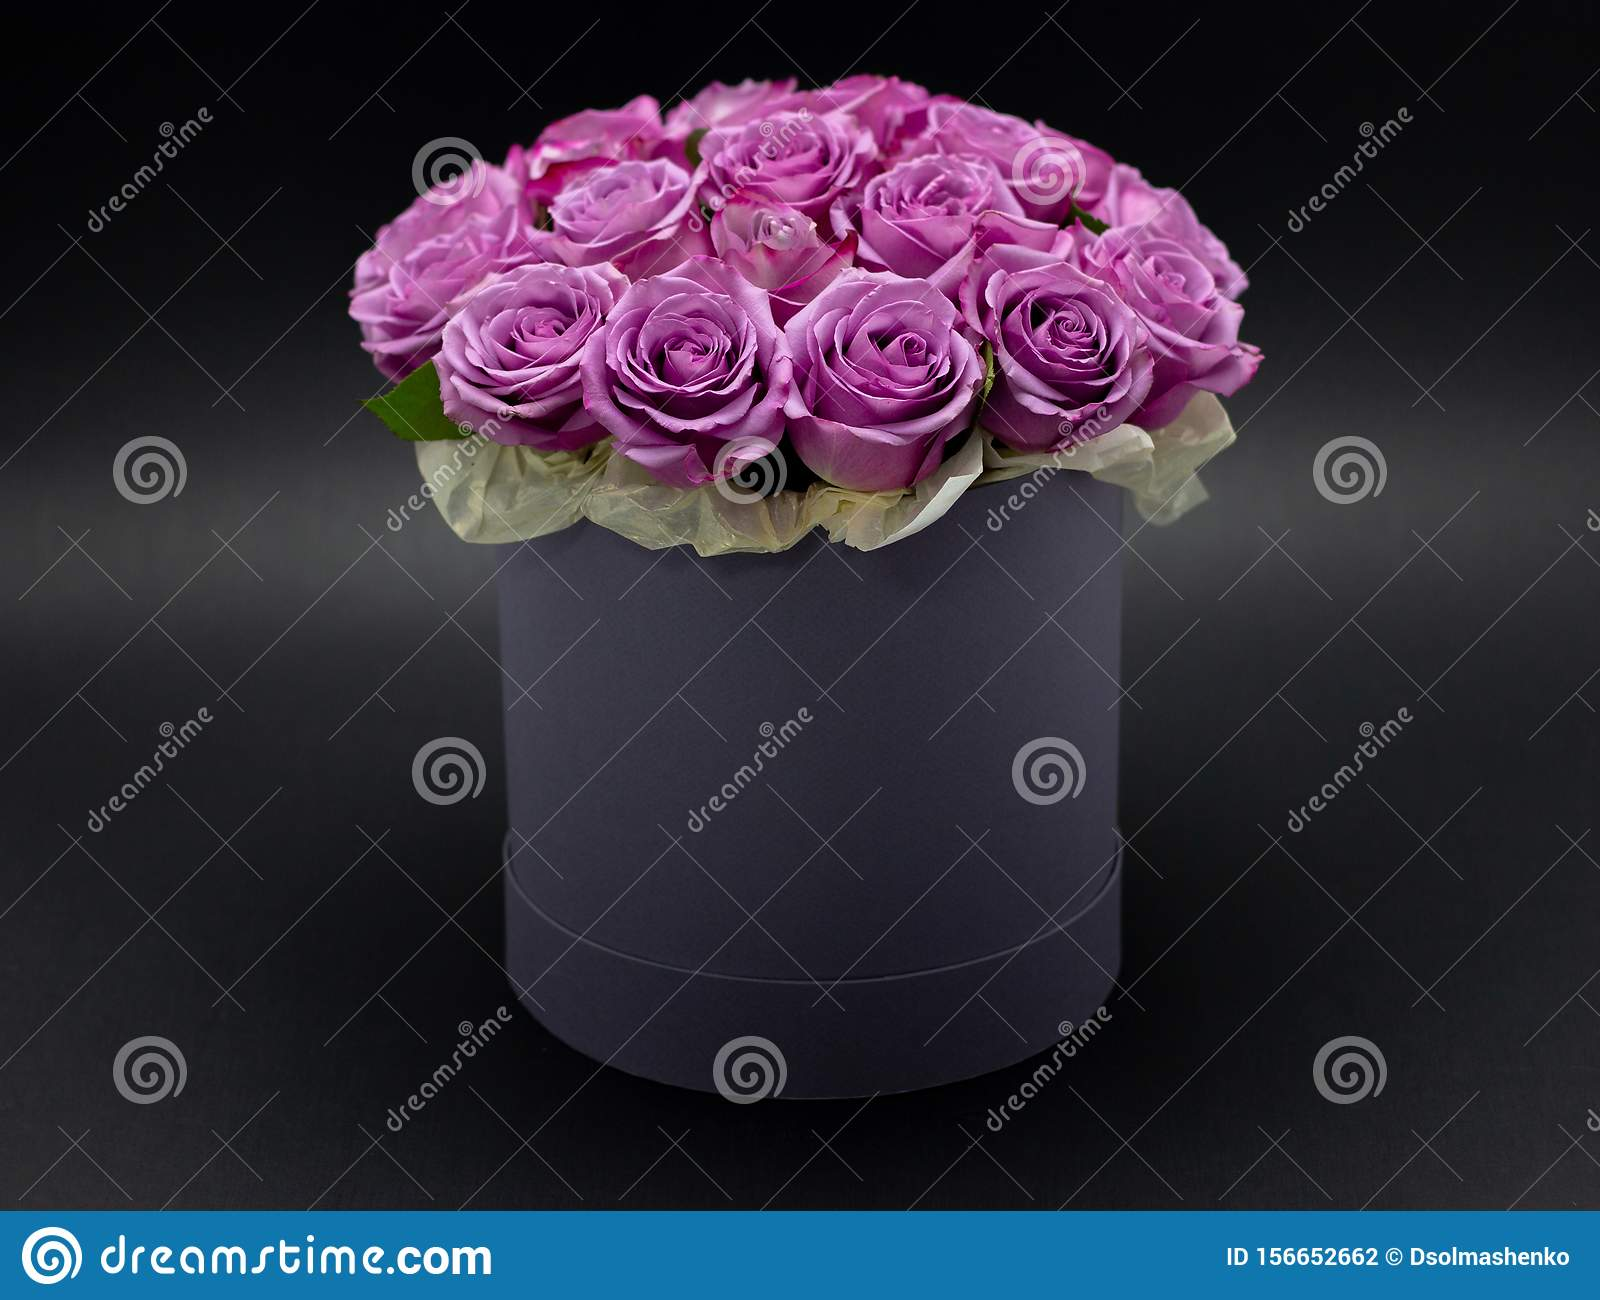 Roses in a hat box on a dark background isolated